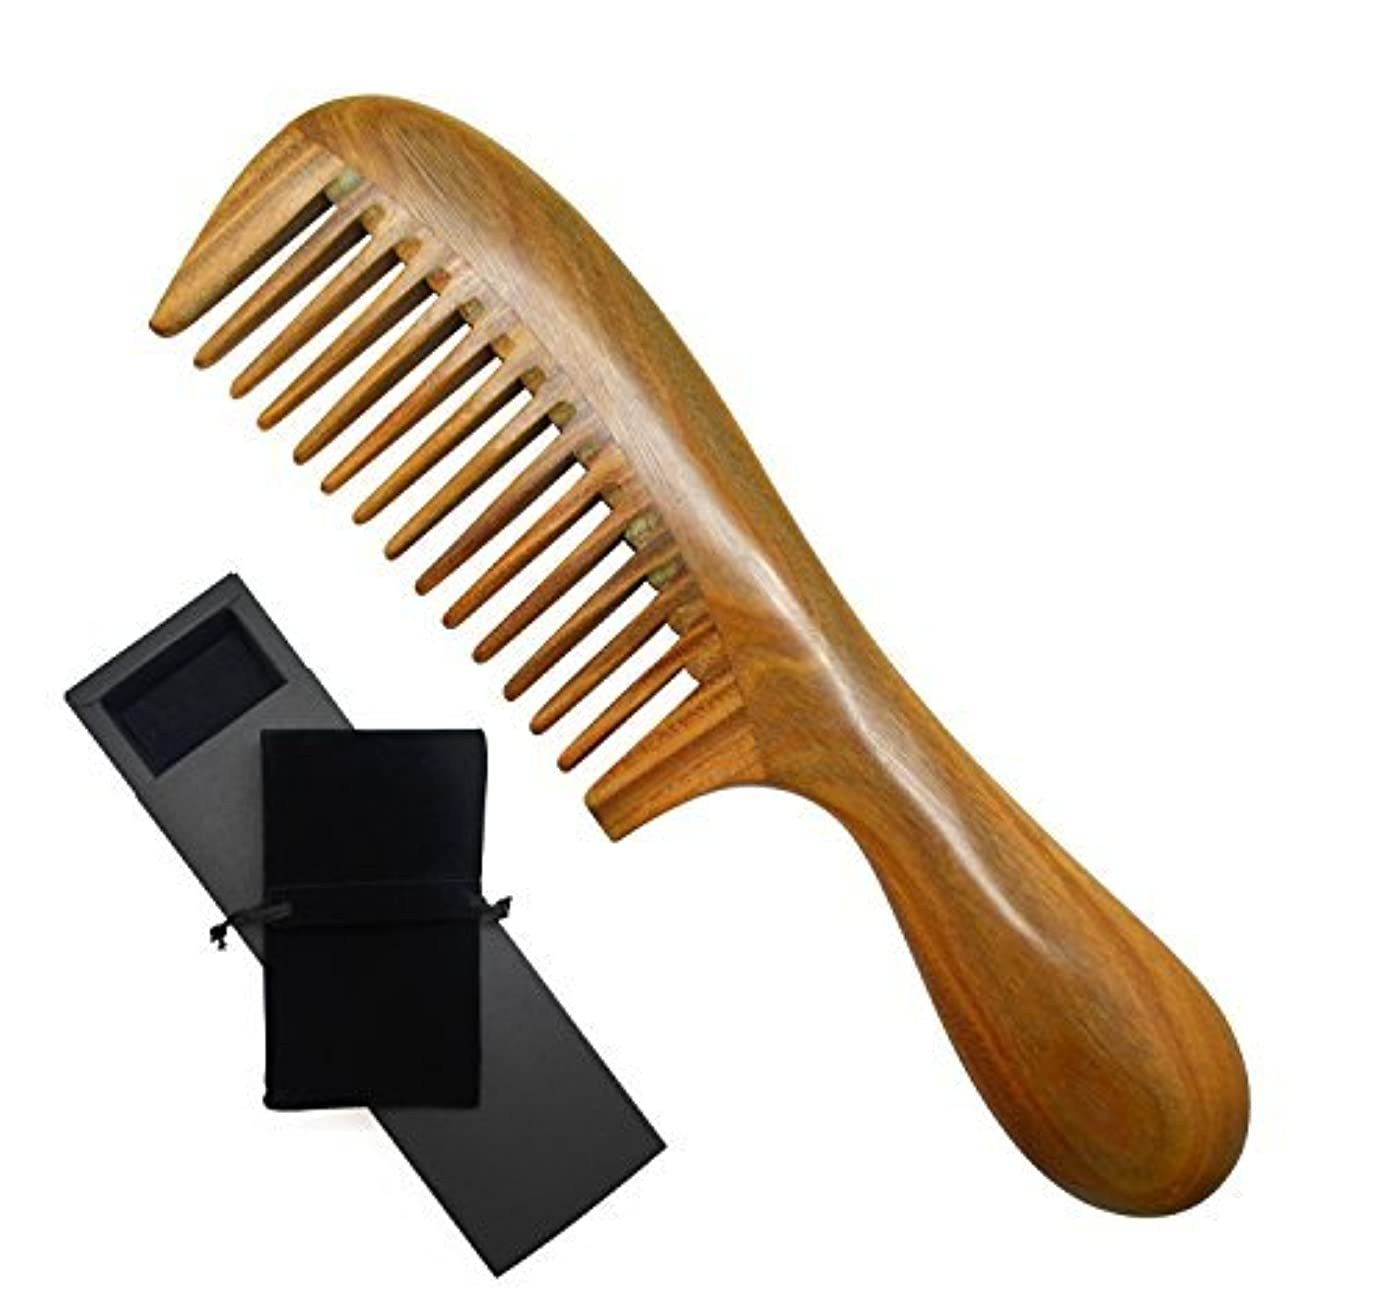 注釈精巧な有罪Meta-C Natural Green Sandalwood Wooden Comb - NO SNAGS, NO TANGLE, NO STATIC (Short Handle - Wide Tooth) [並行輸入品]